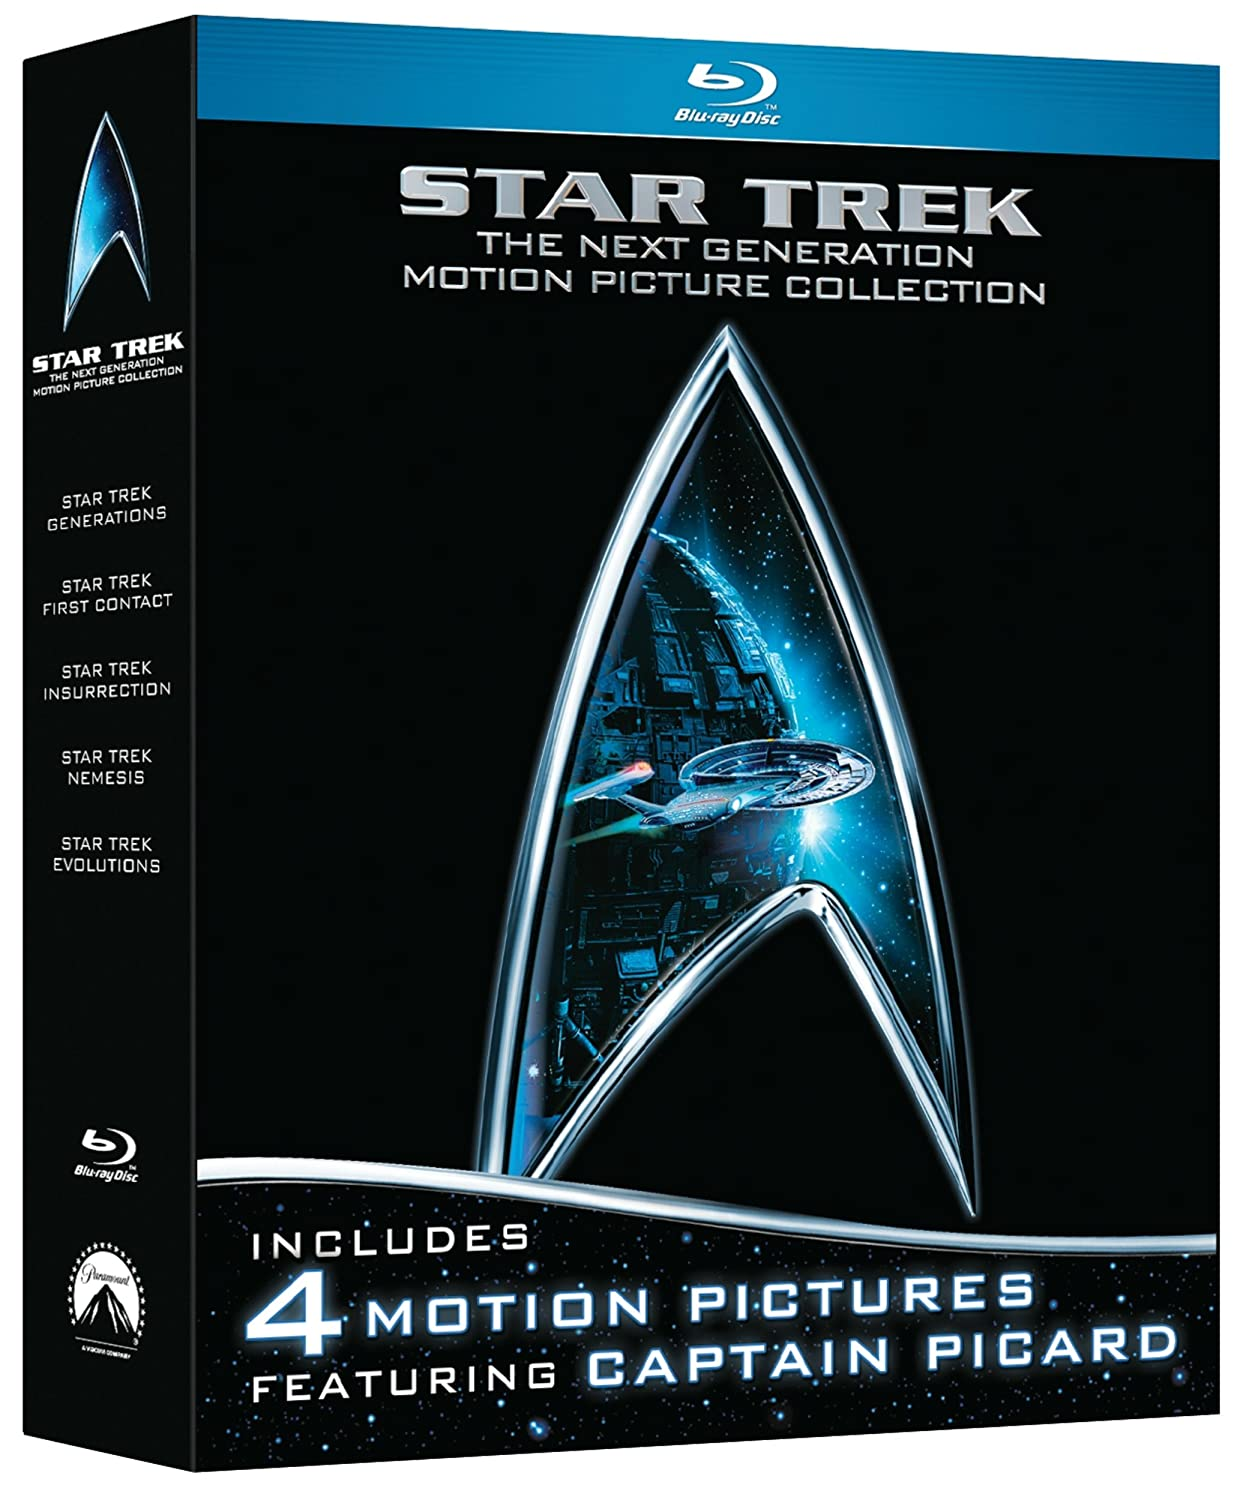 Save up to 66% on Star Trek: The Next Generation Motion Picture Collection on Blu-ray and DVD